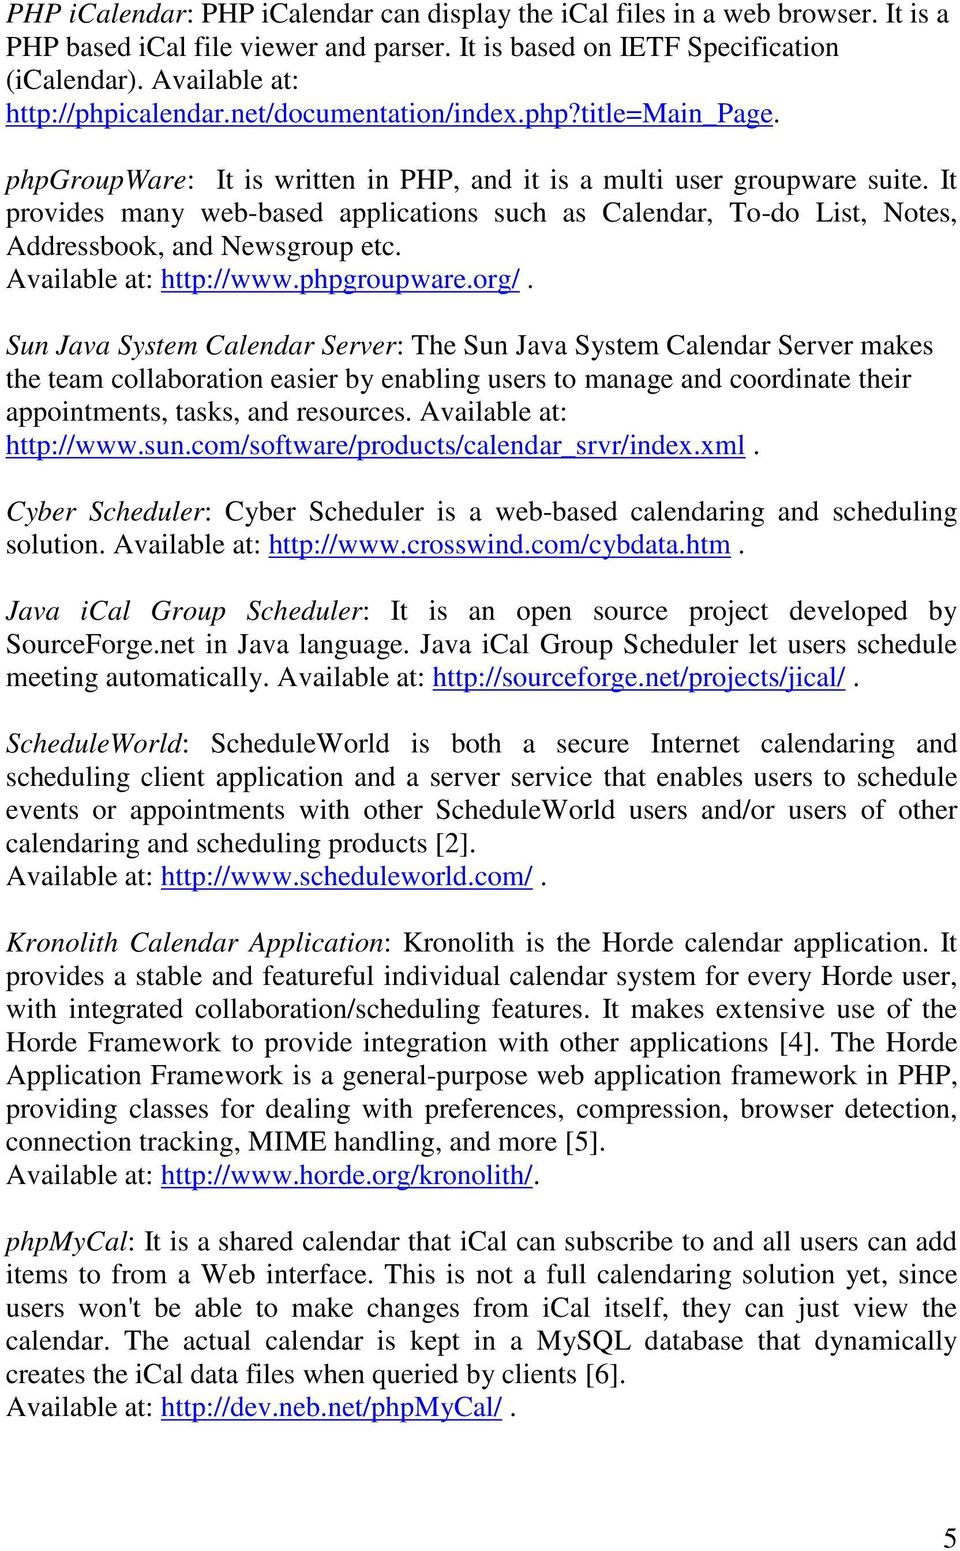 Internet Calendaring and Scheduling Core Object